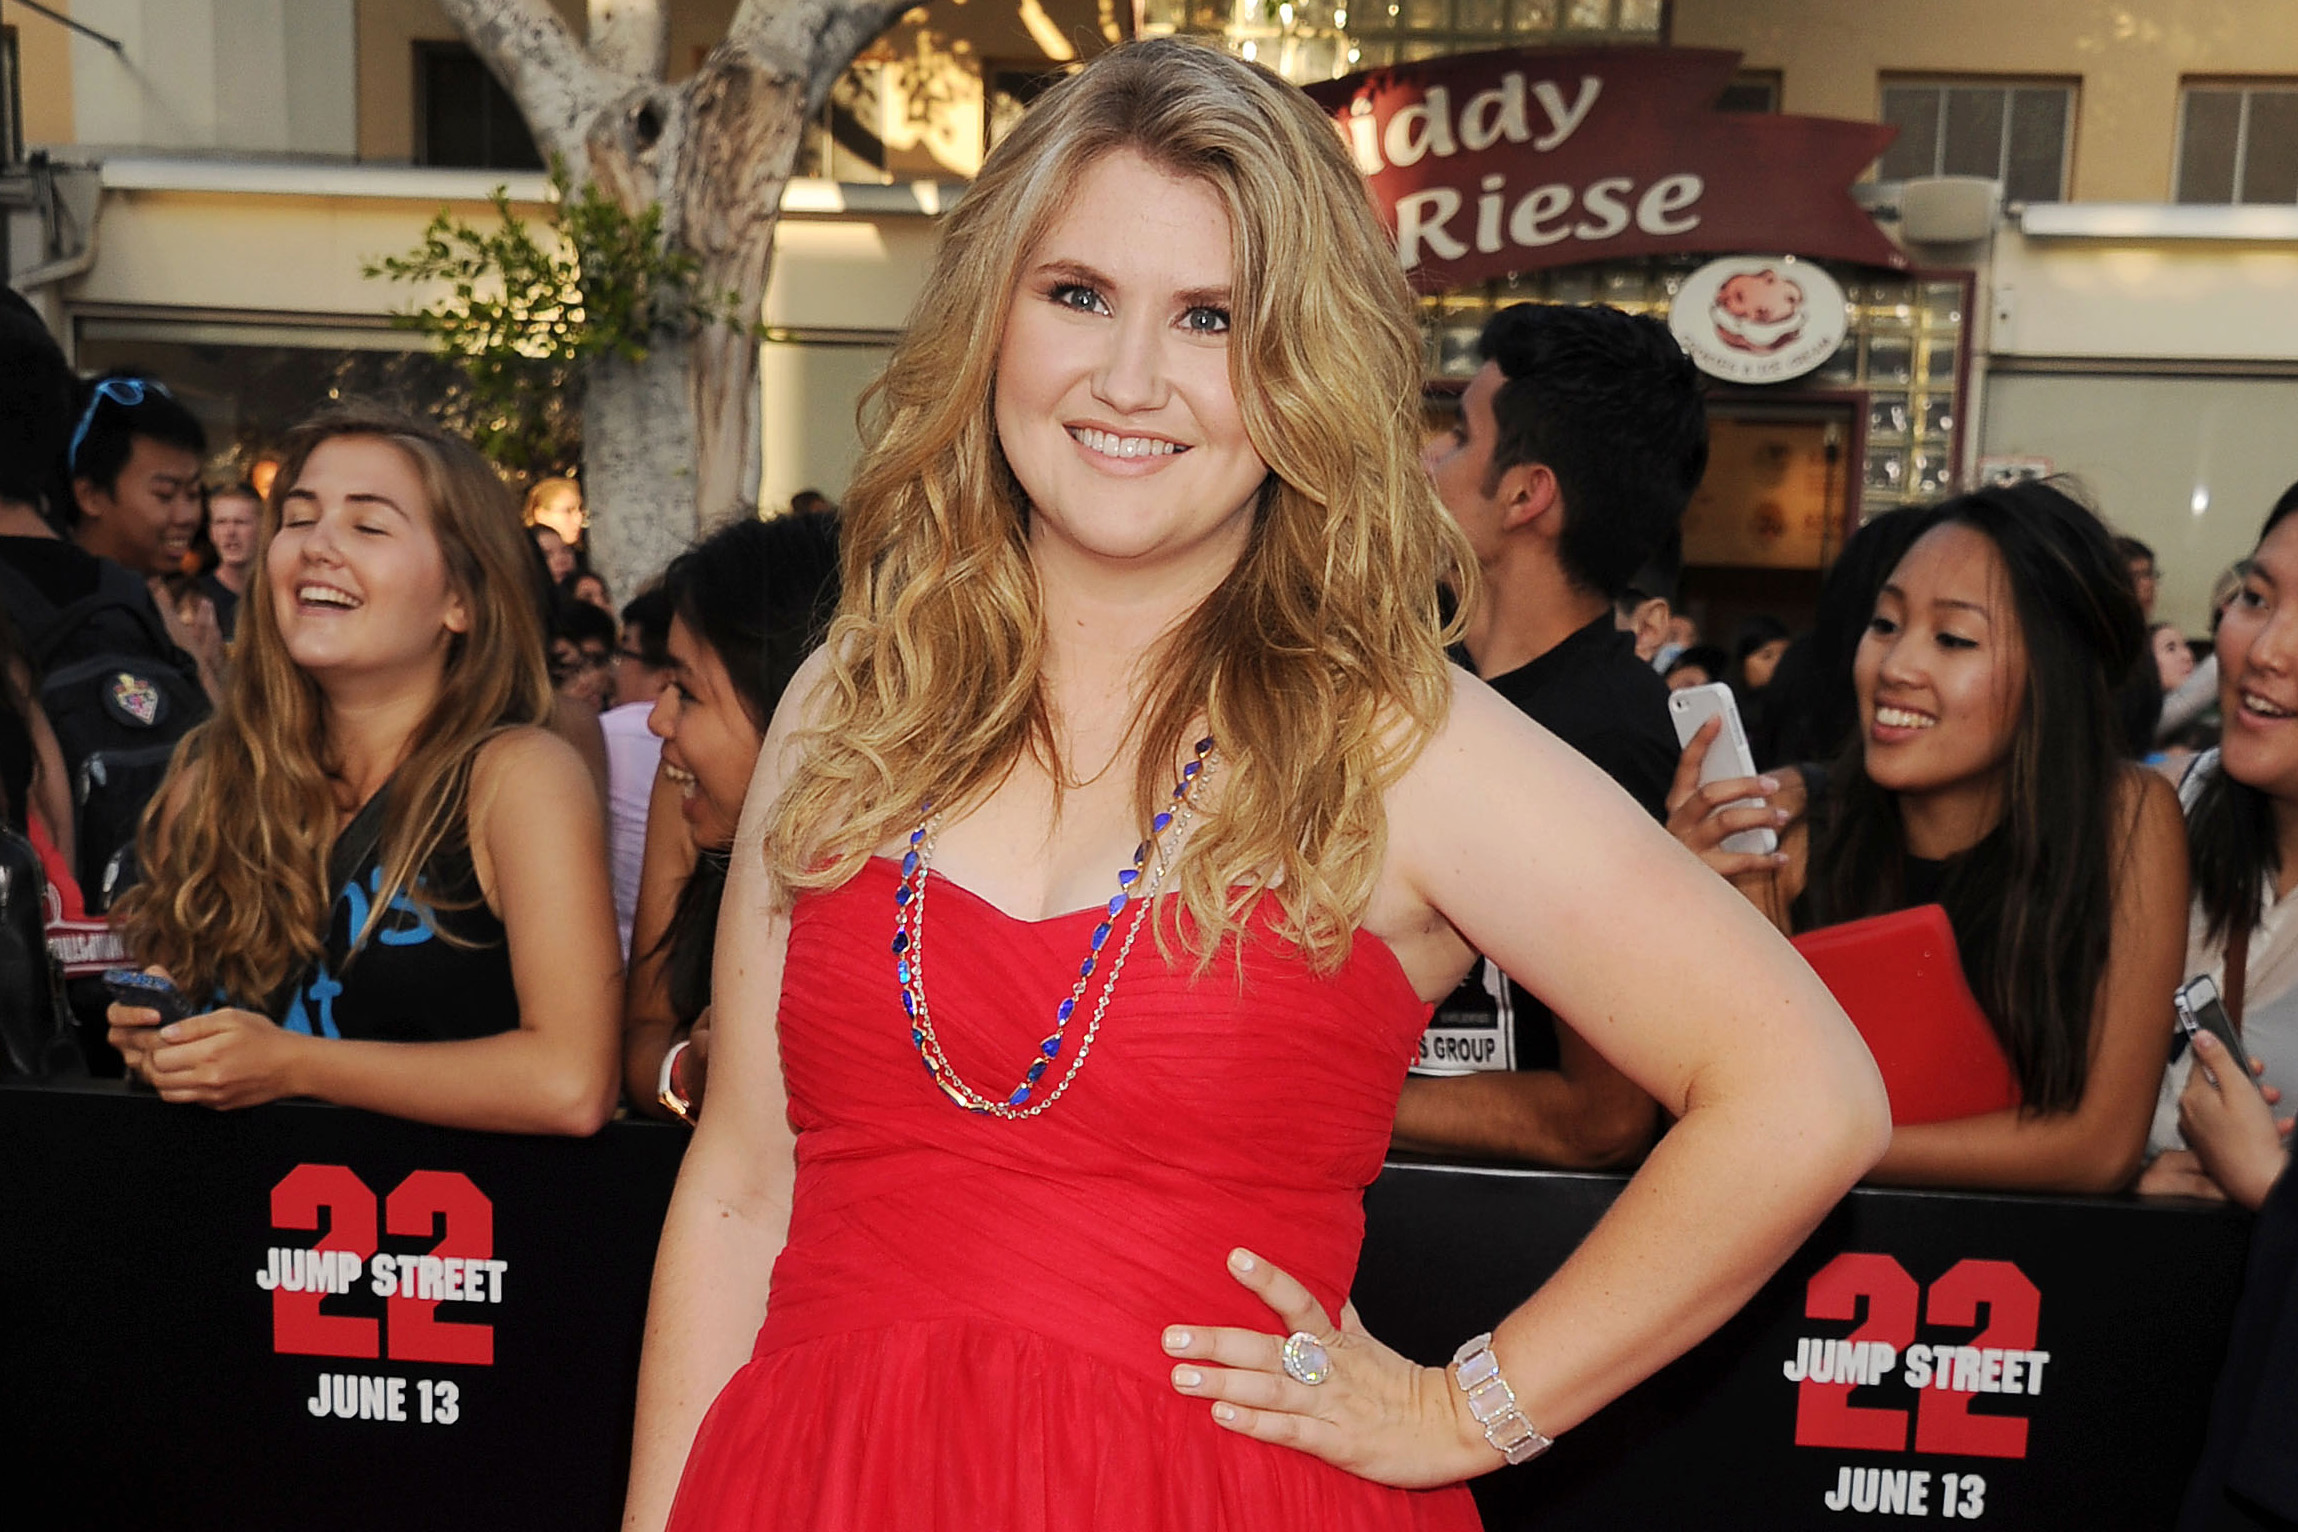 Actress Jillian Bell arrives at the Los Angeles premiere of '22 Jump Street' at Regency Village Theatre on June 10, 2014 in Westwood, California.